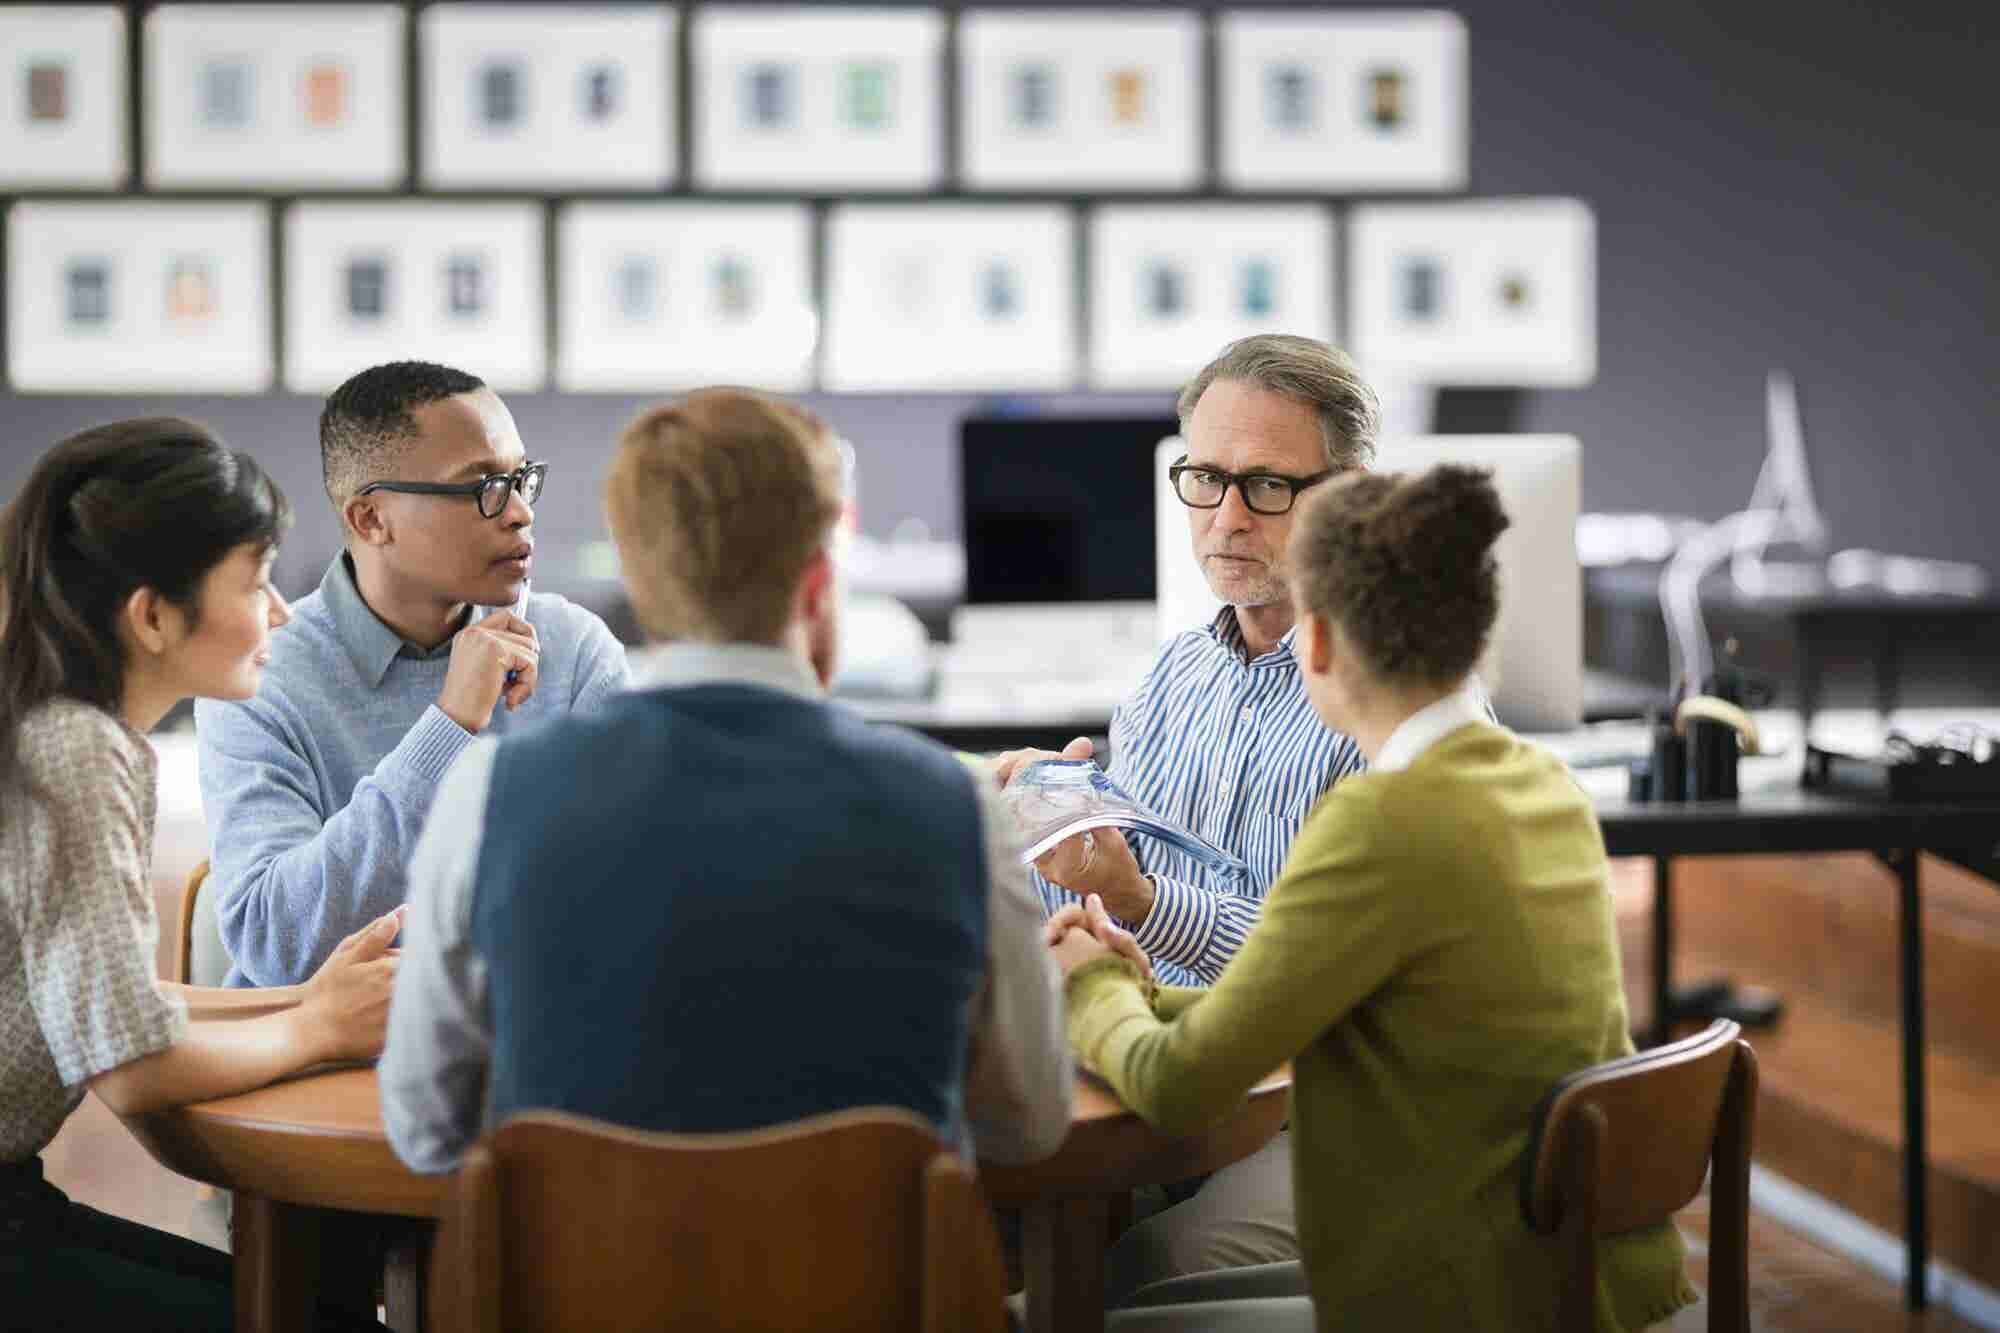 How to Bond With Your Employees Without Compromising Your Authority